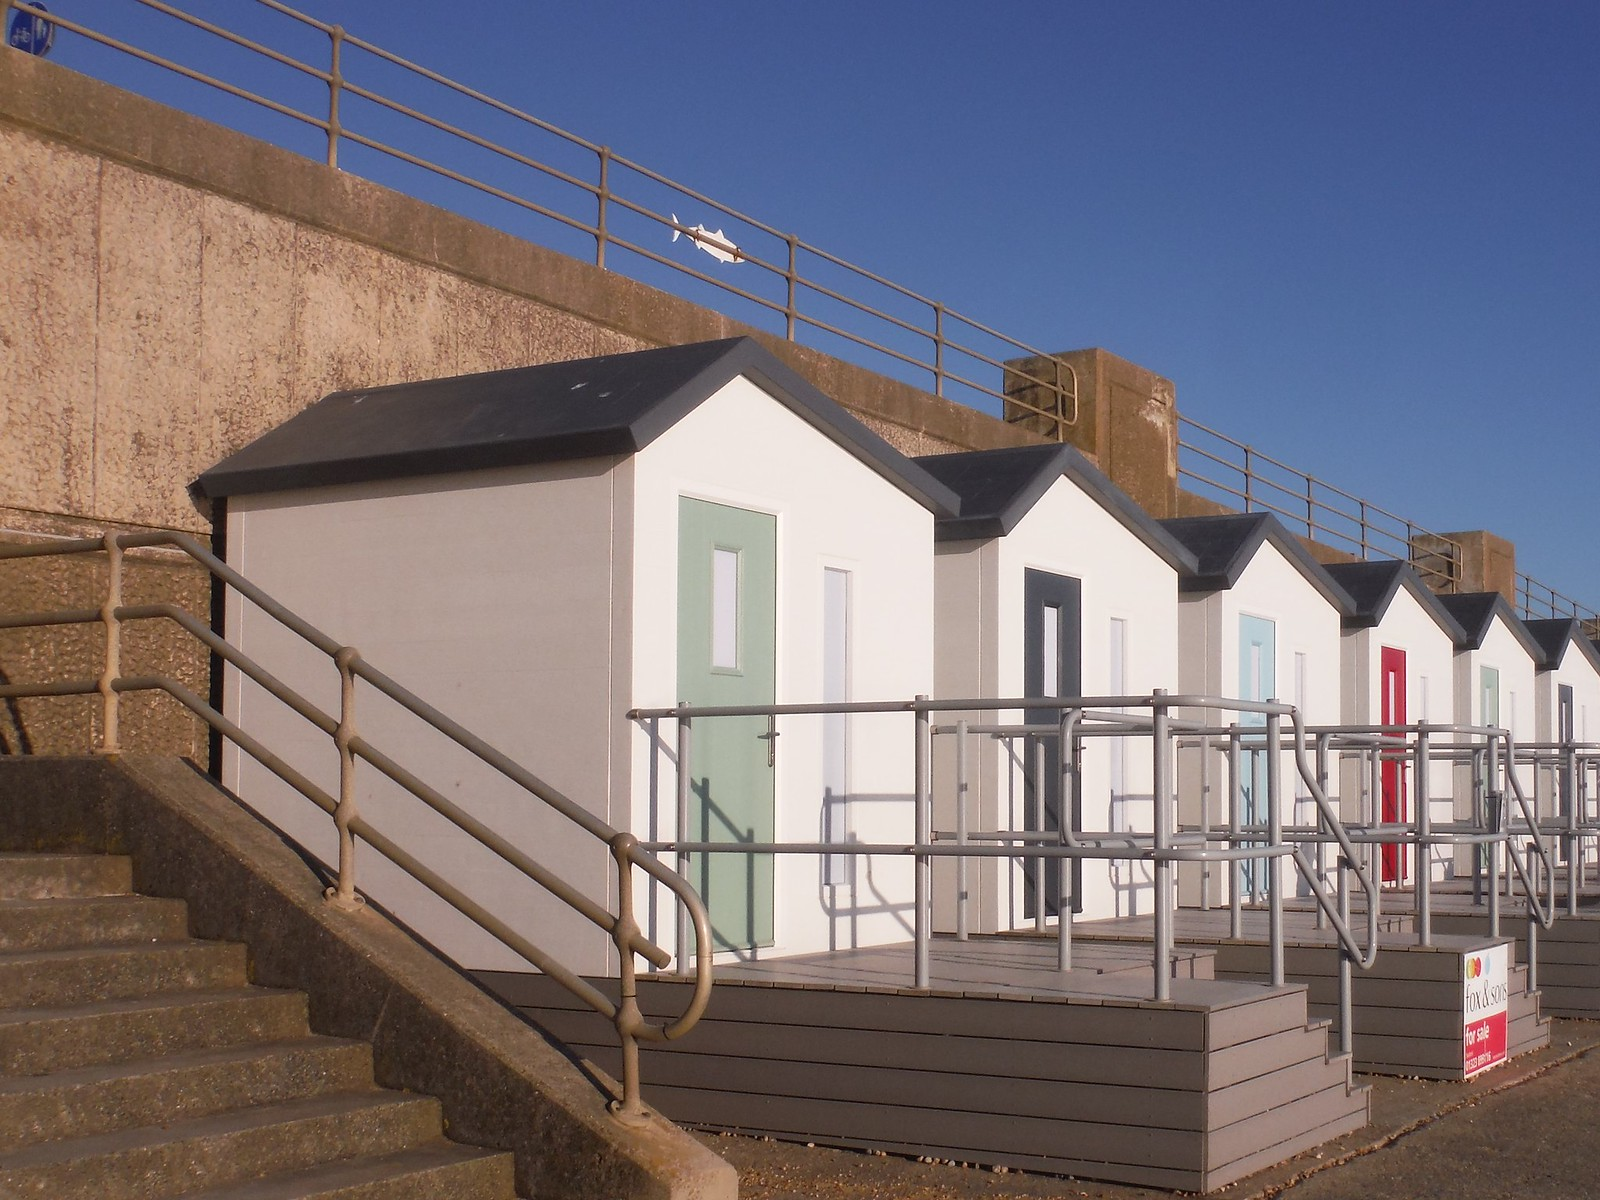 Beach Huts, Seaford SWC Walk 181 - Lewes to Seaford via West Firle